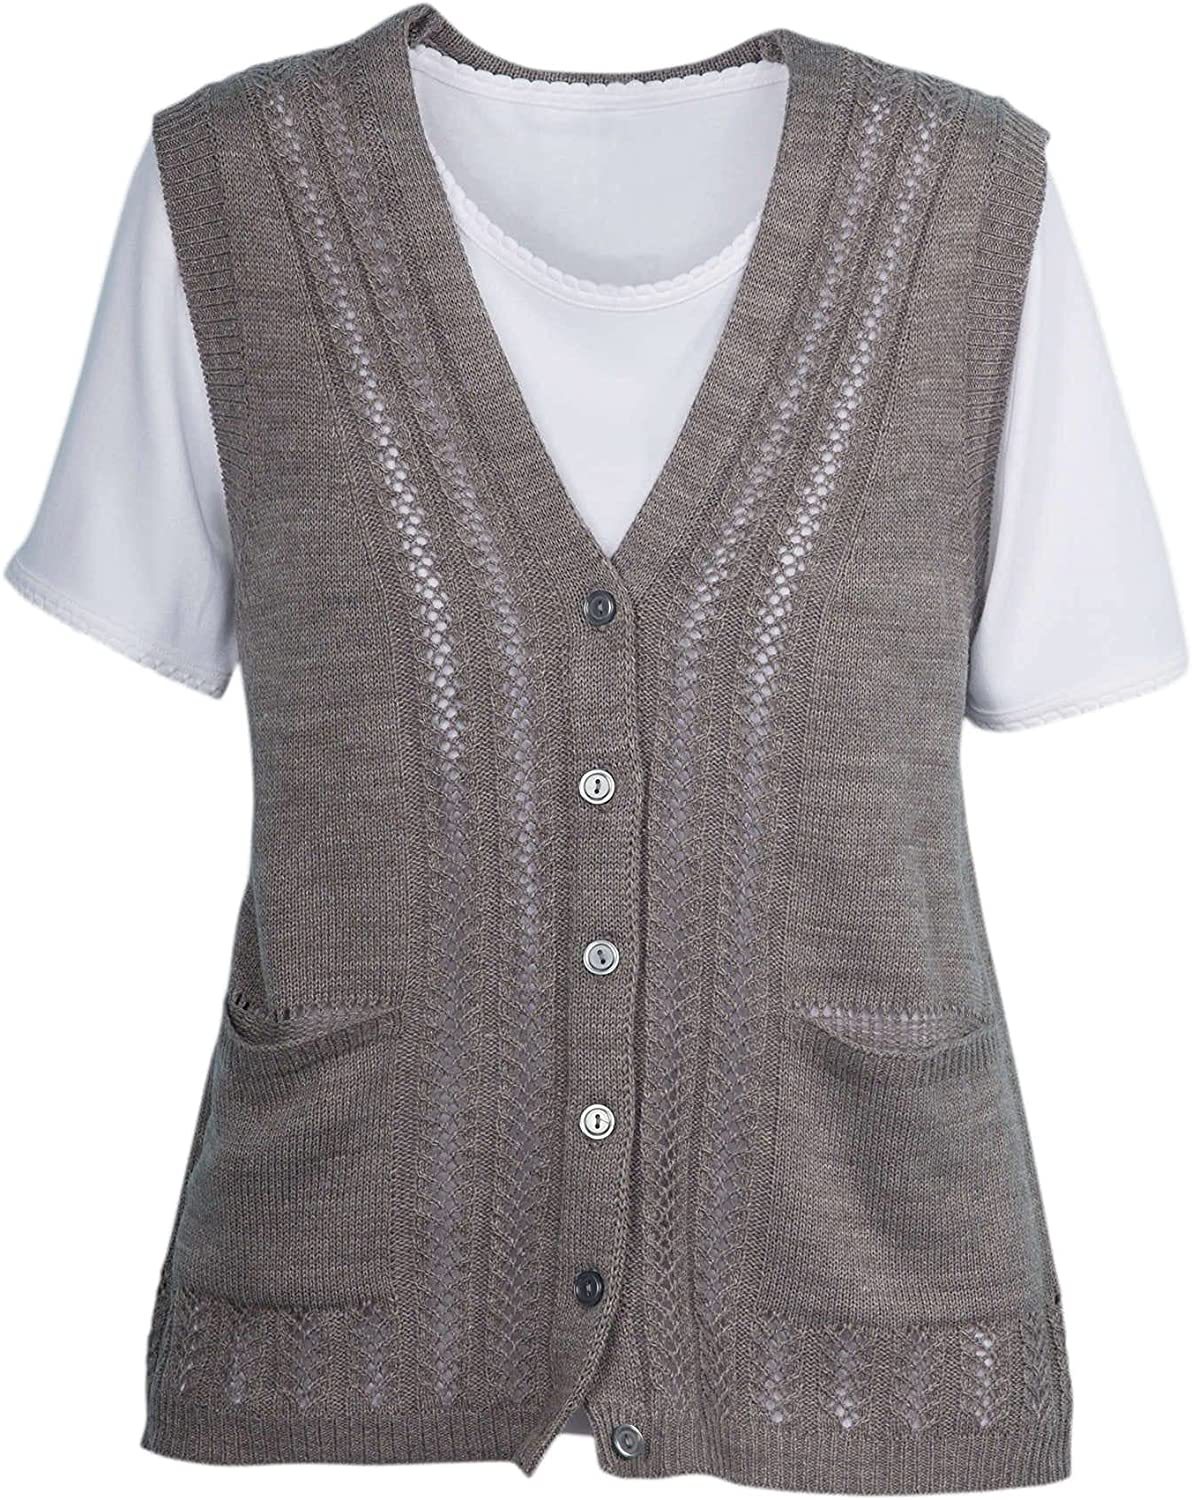 National Classic Sweater Vest - Pointelle Knit Detail, Button-Front & Patch Pockets